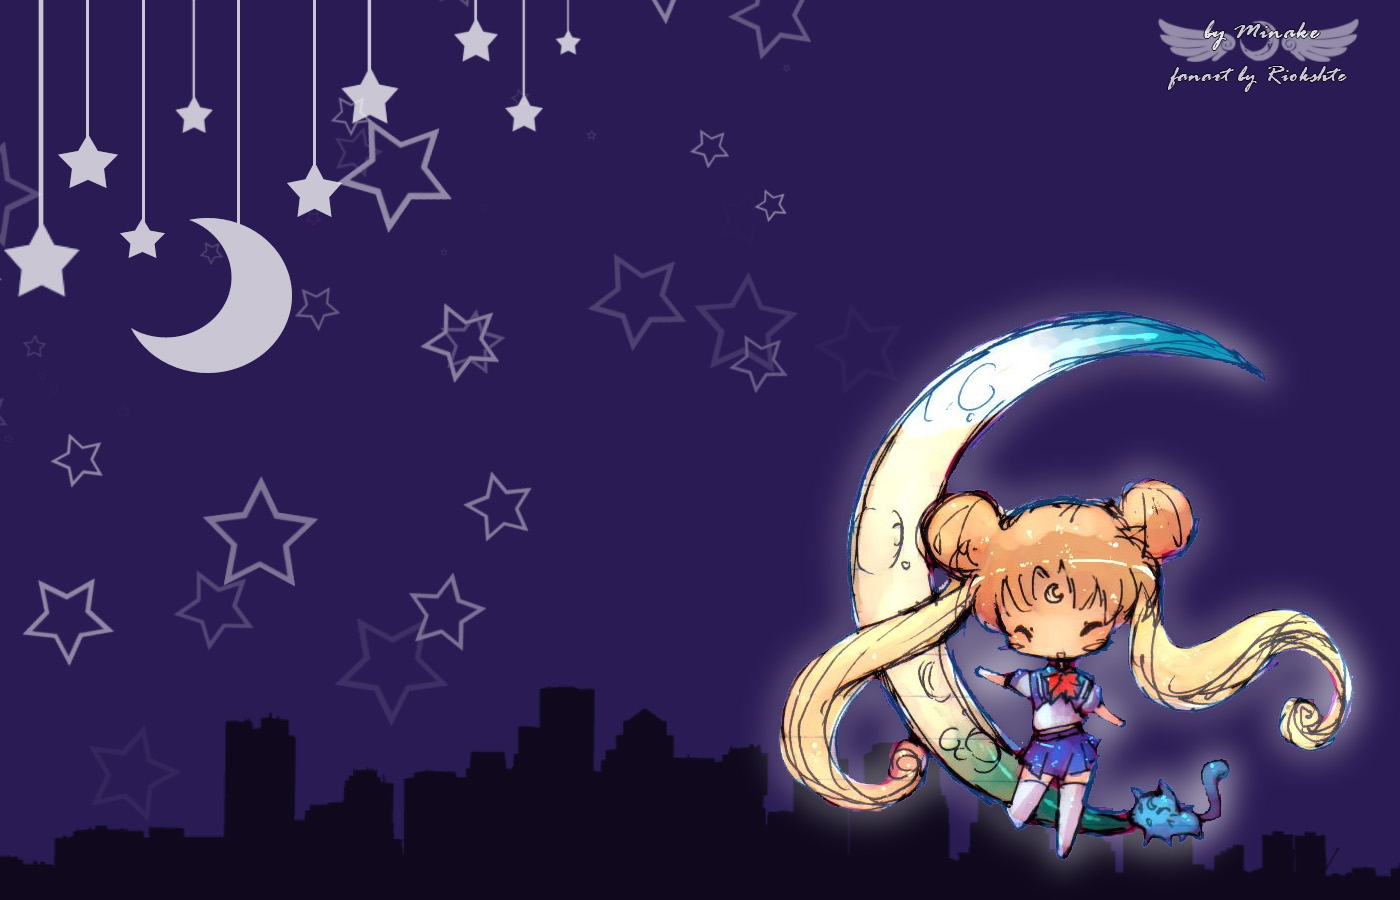 chibi planets background - photo #23